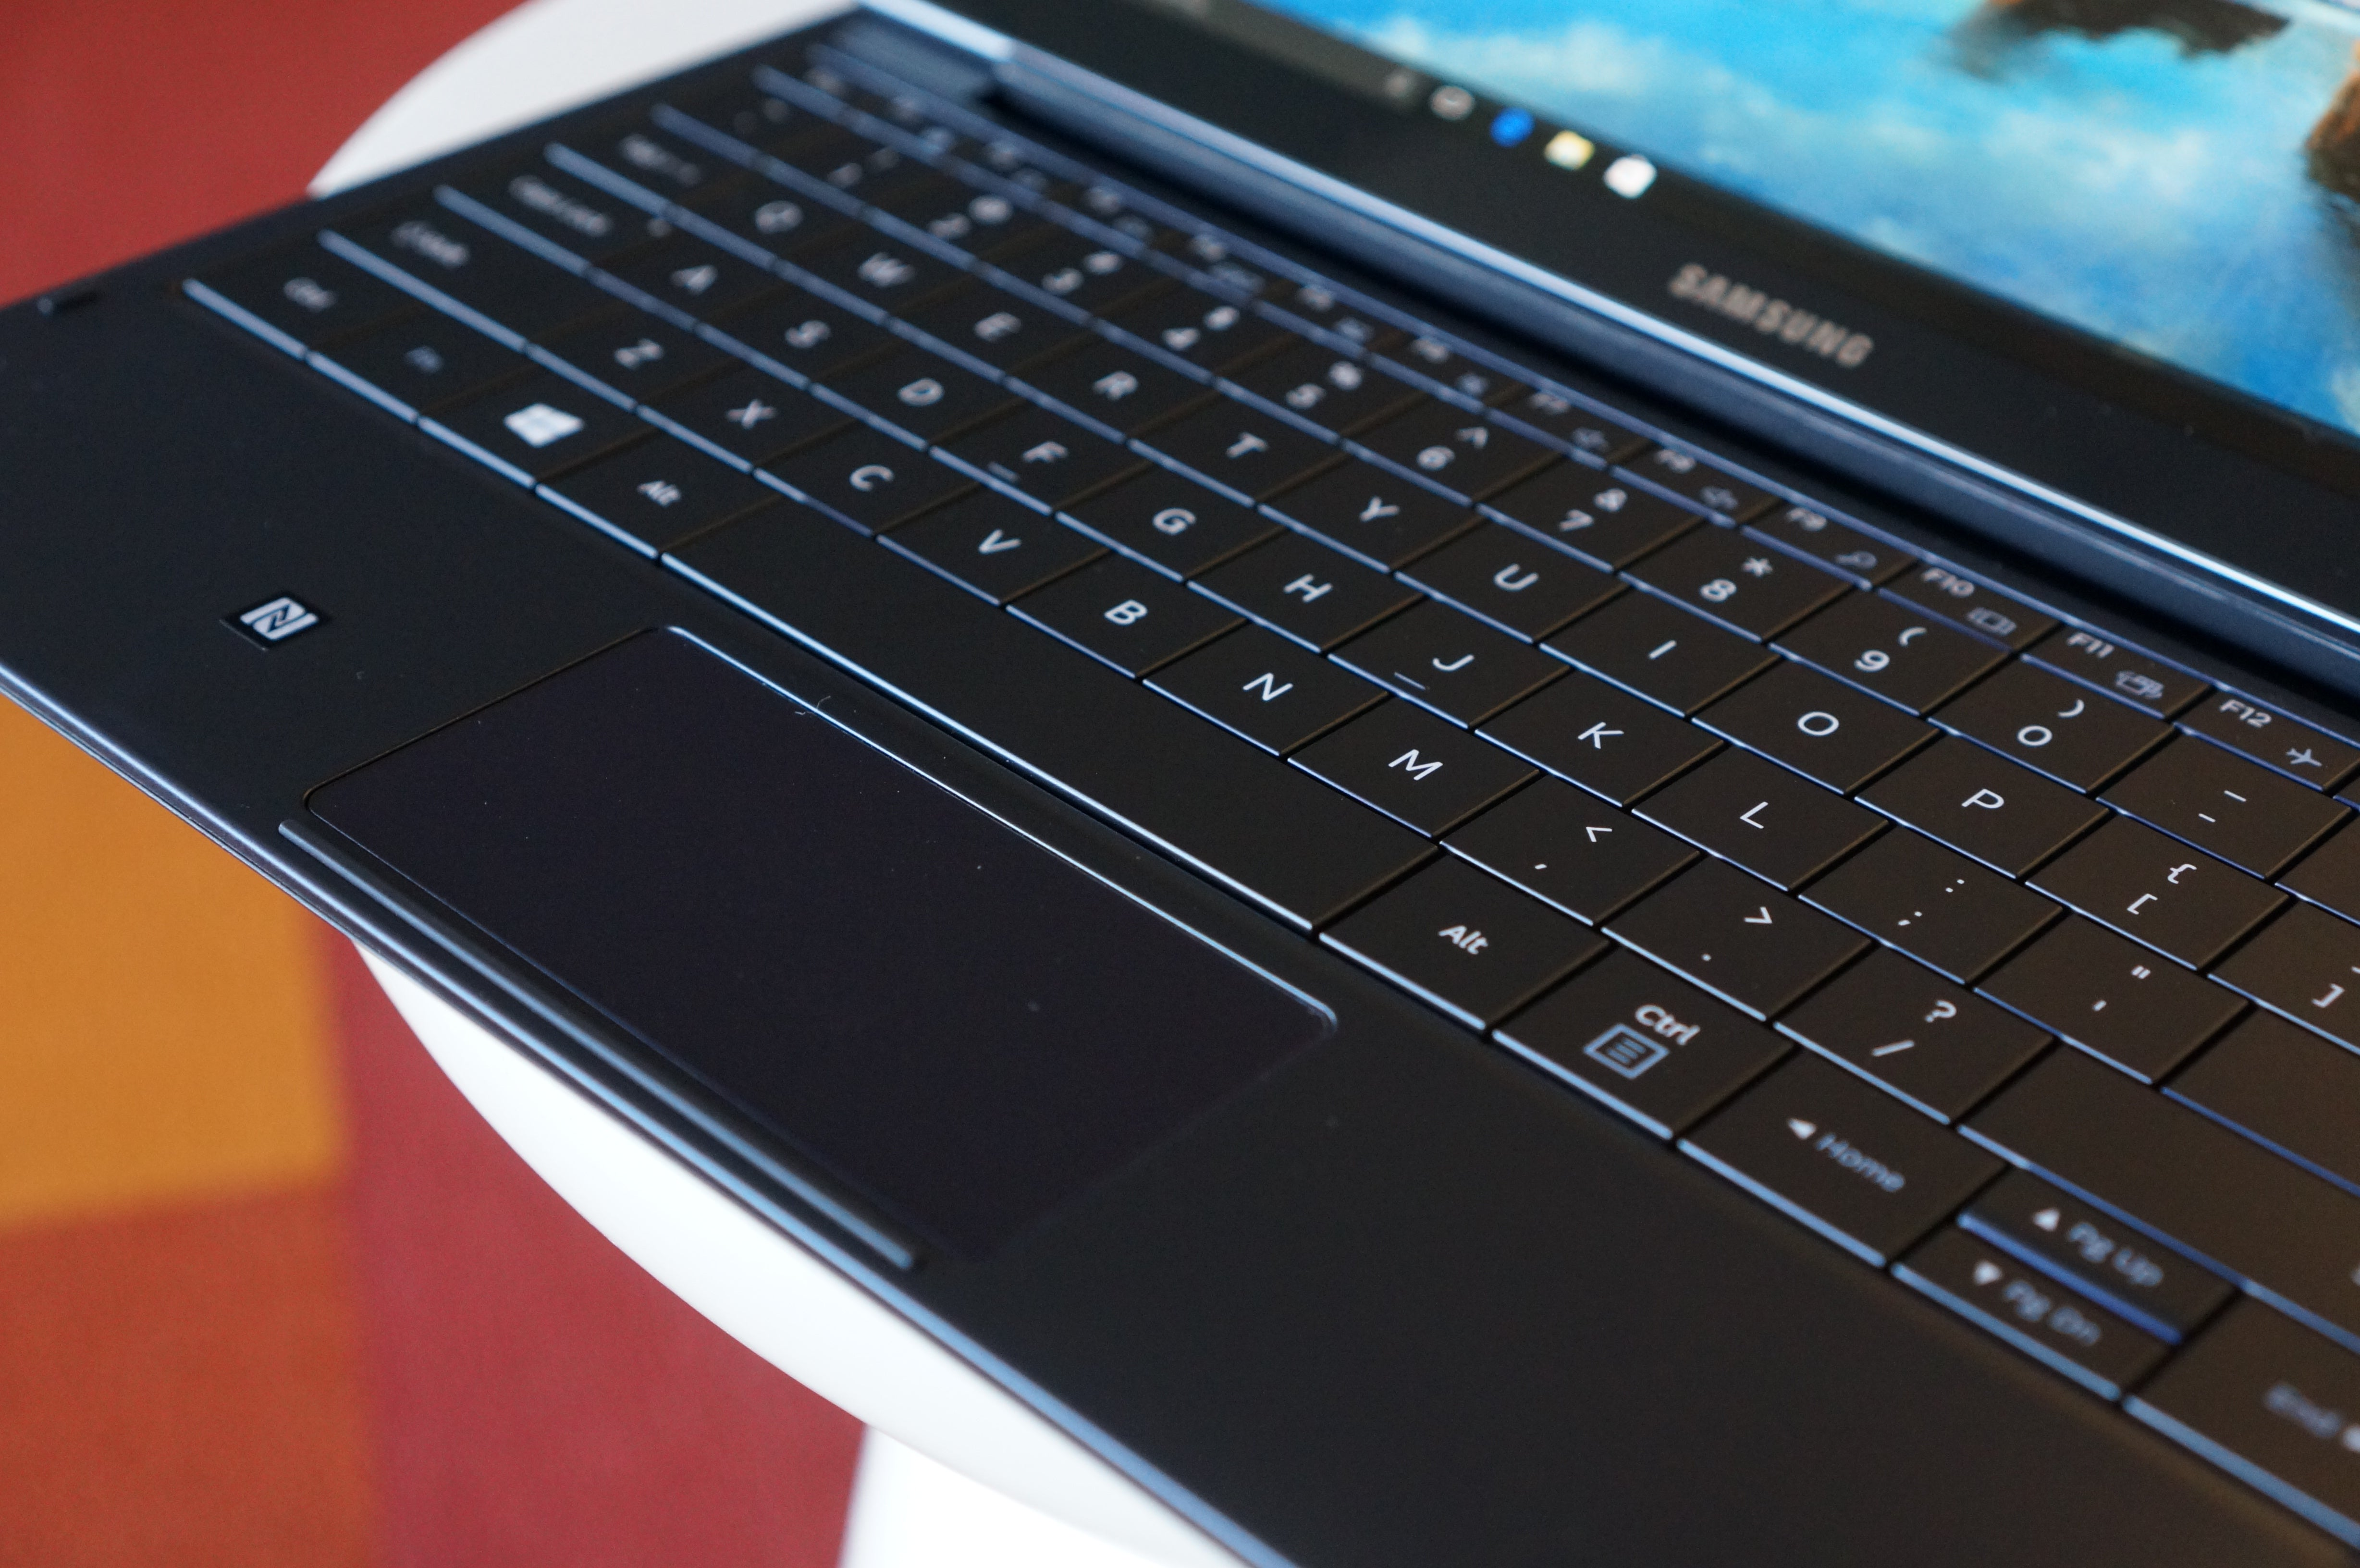 samsung galaxy tabpro s review this surface pro clone is. Black Bedroom Furniture Sets. Home Design Ideas